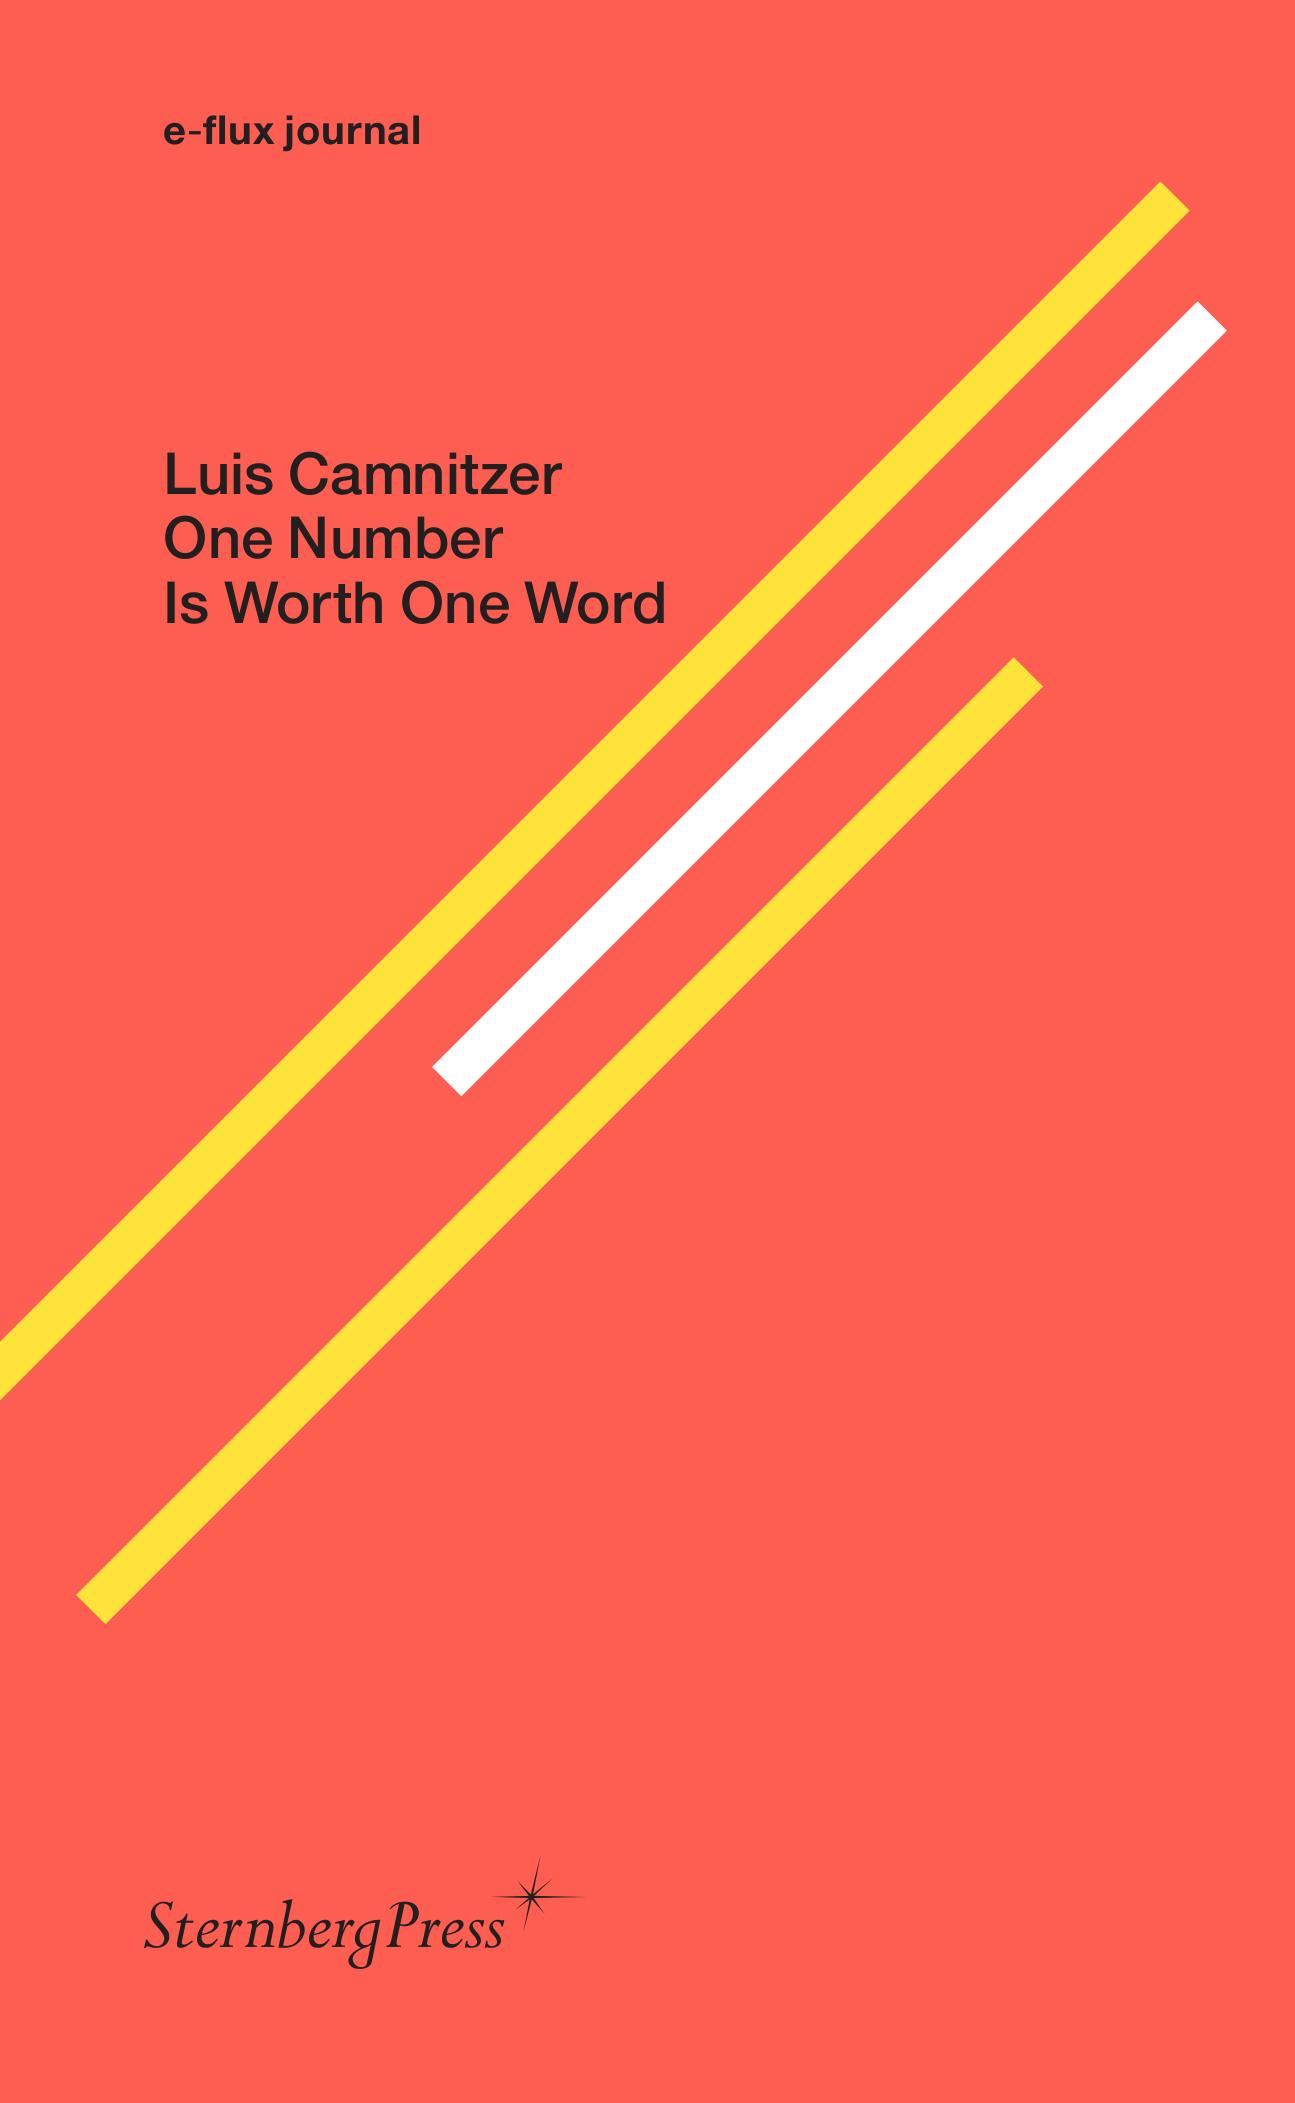 Luis Camnitzer, One Number is Worth One Word, book cover 2020